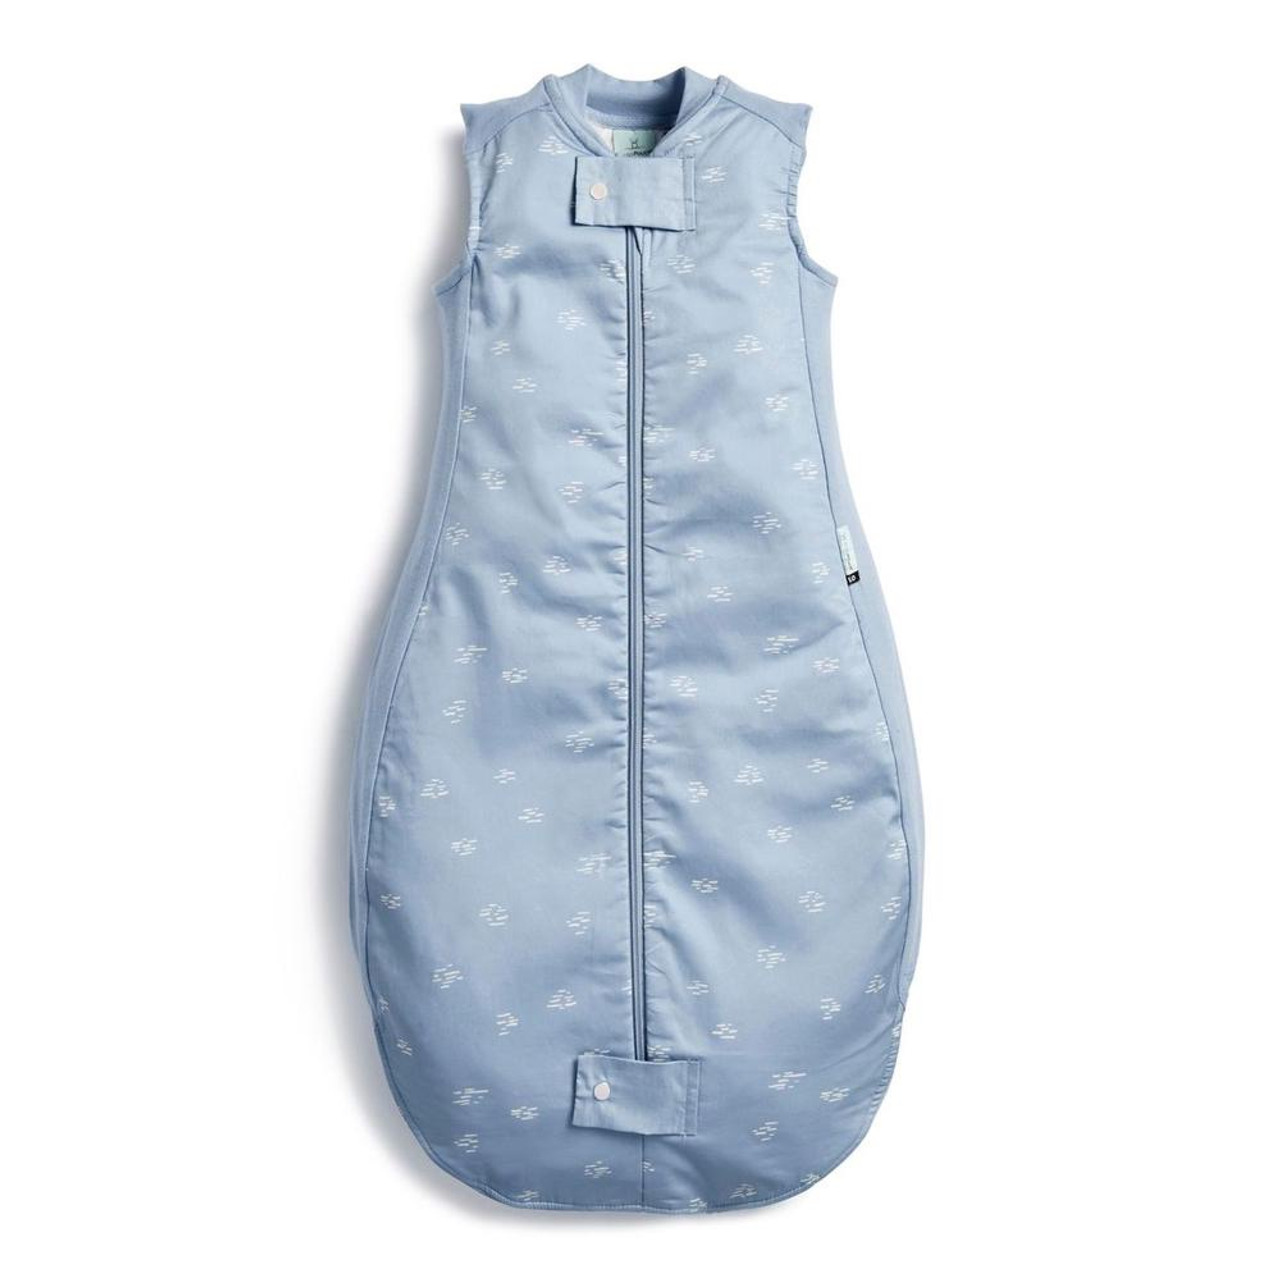 ergoPouch Sheeting Sleeping Bag 0.3 Tog 2-4 Years at Baby Barn Discounts Ergopouch lightweight sleeping bag perfect for hot summer nights sleep.